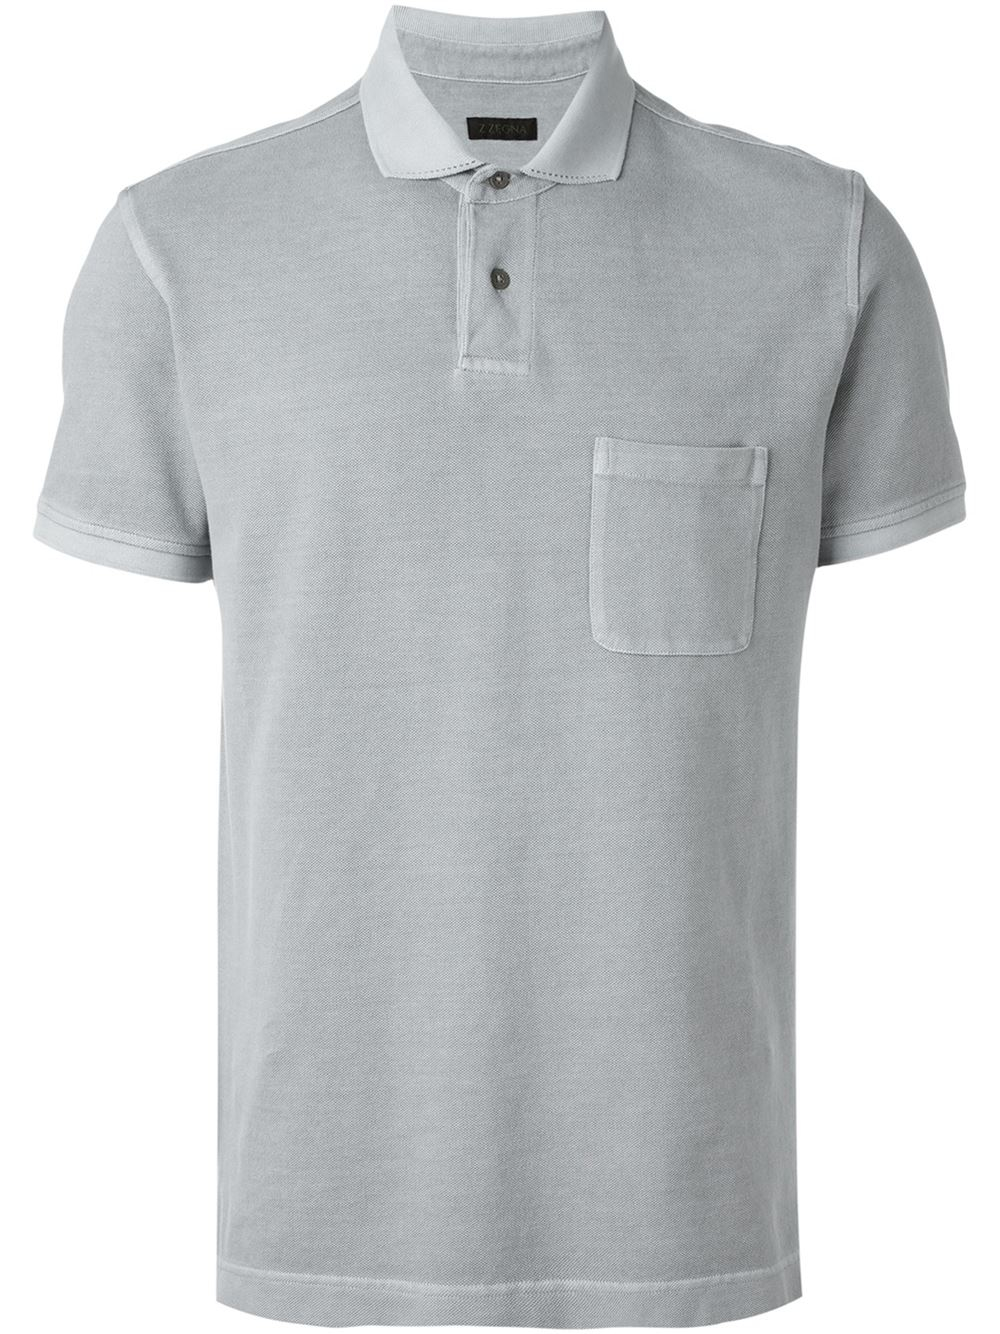 Z zegna chest pocket polo shirt in gray for men lyst for Men s polo shirts with chest pocket